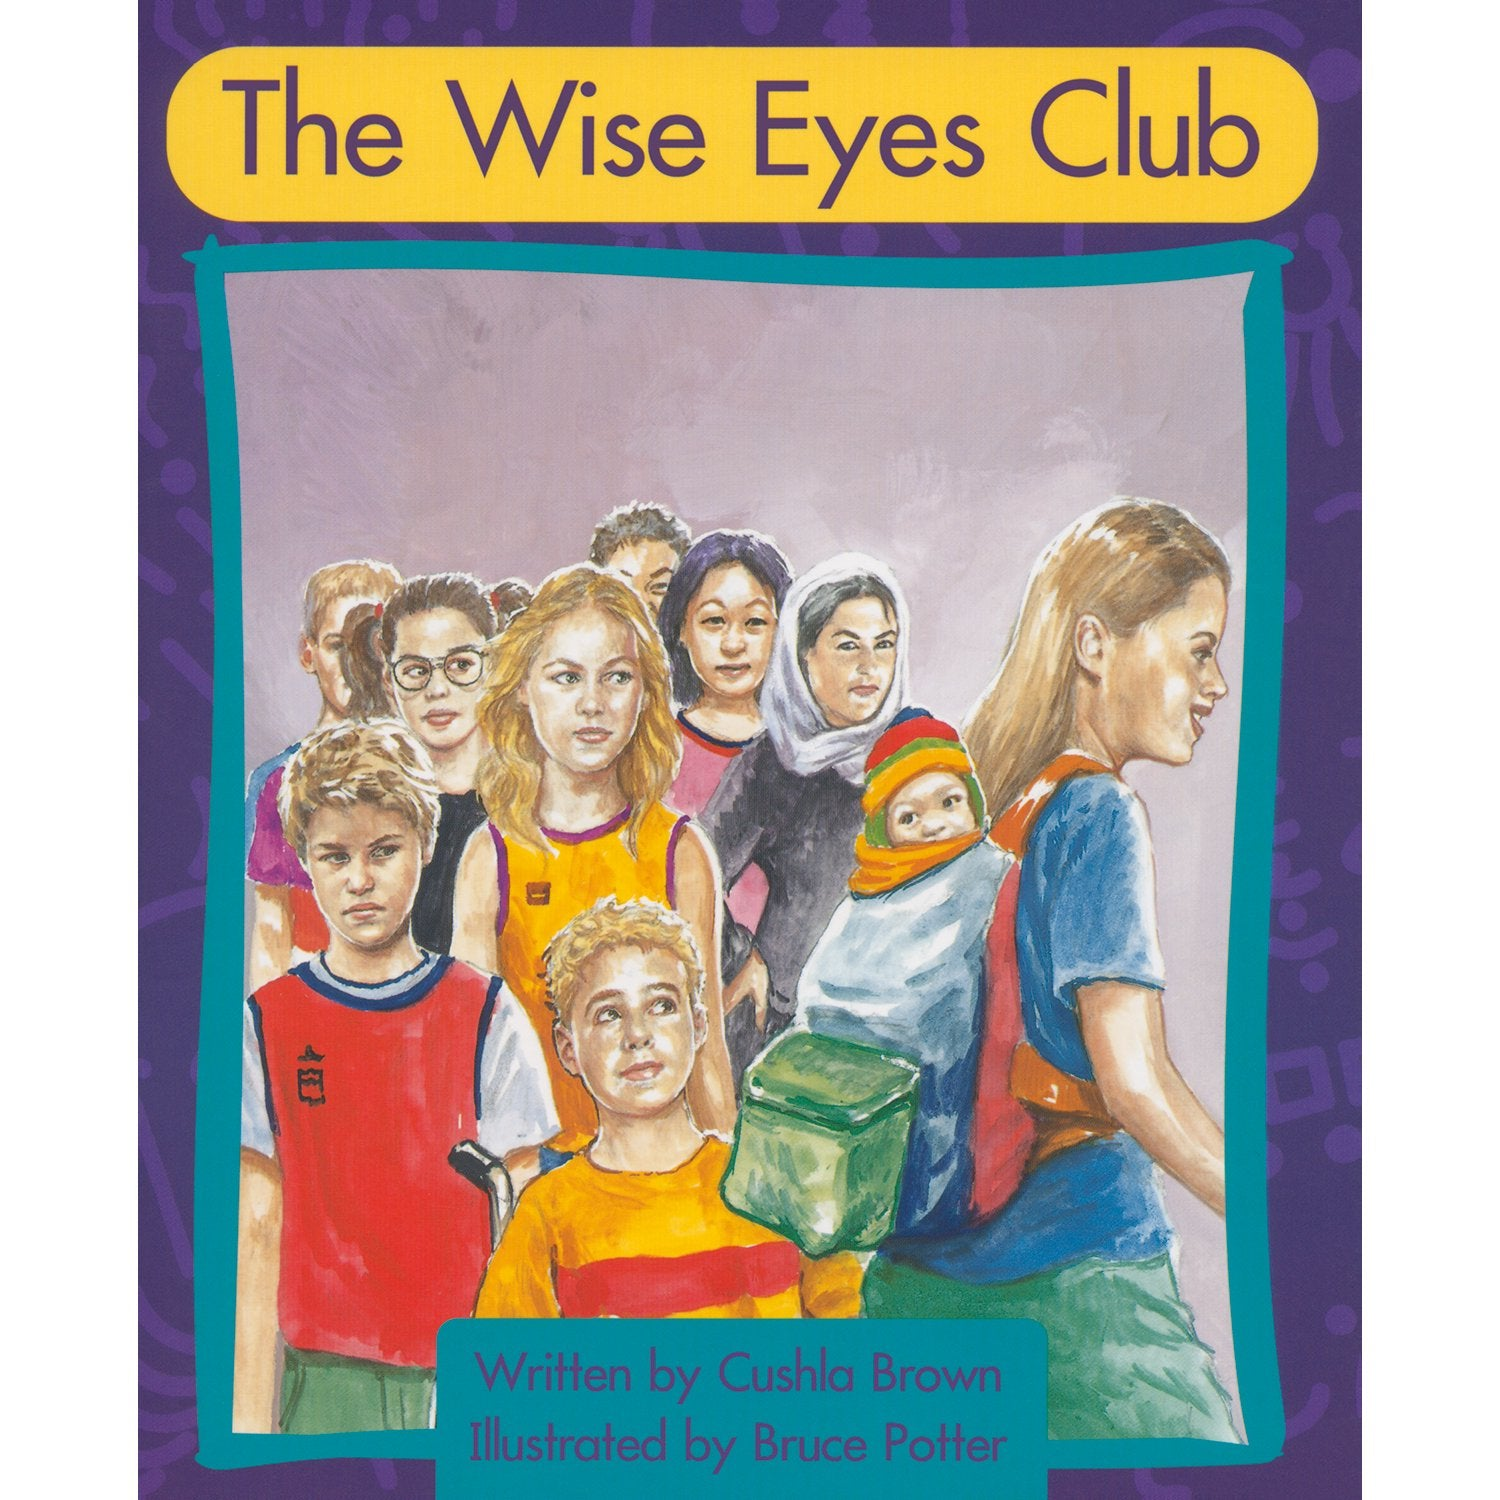 The Wise Eyes Club